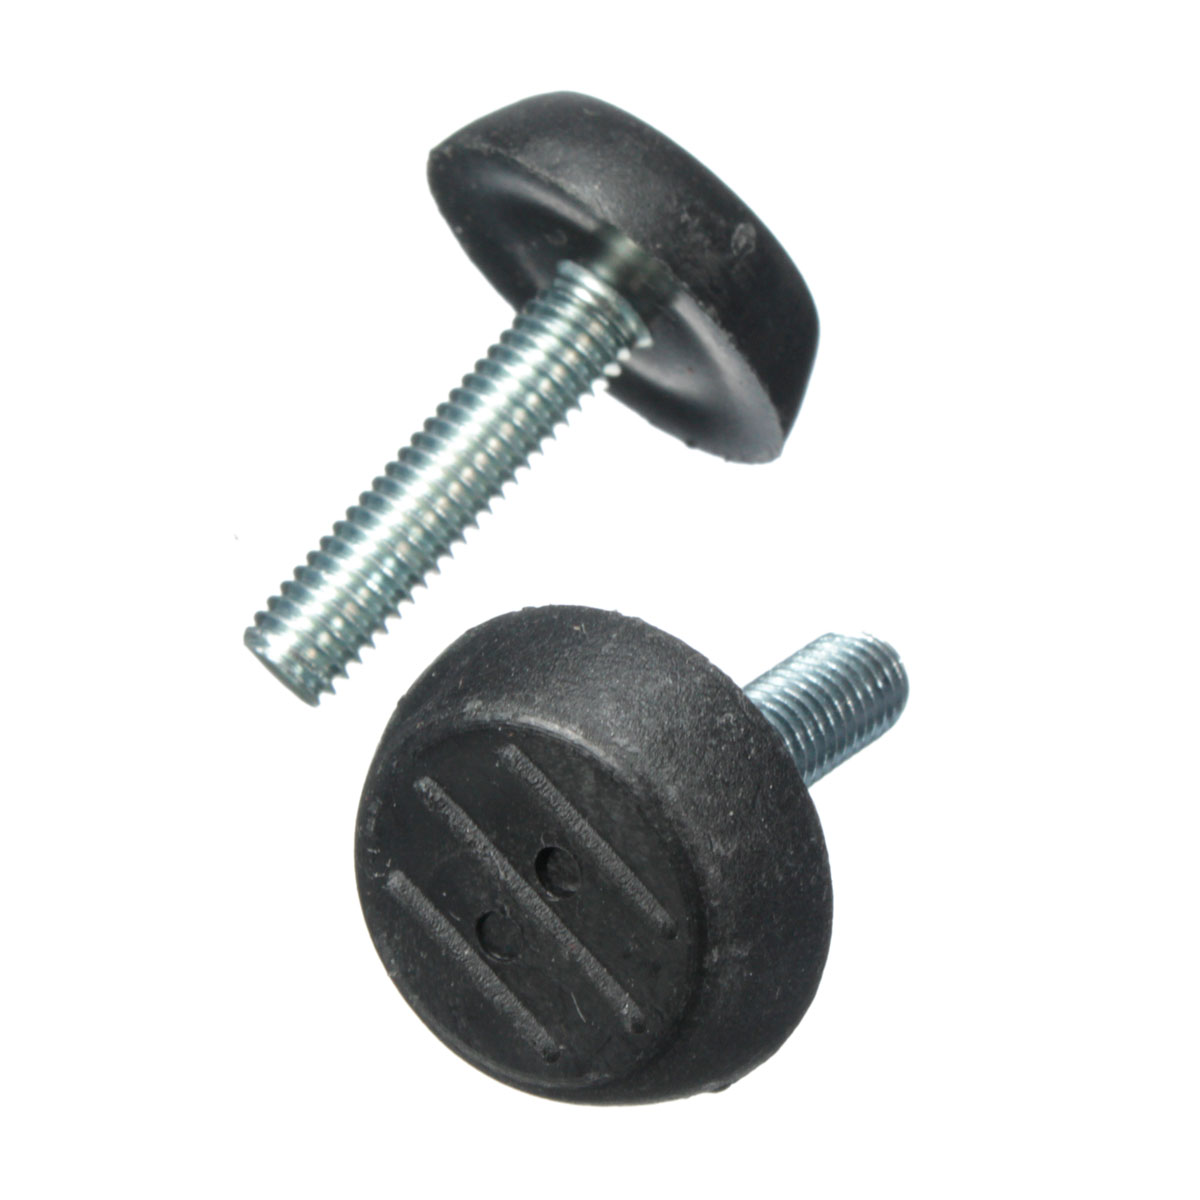 20x m6 adjustable screw threaded glide feet leveling foot home chair table 25mm black intl - Threaded furniture feet ...